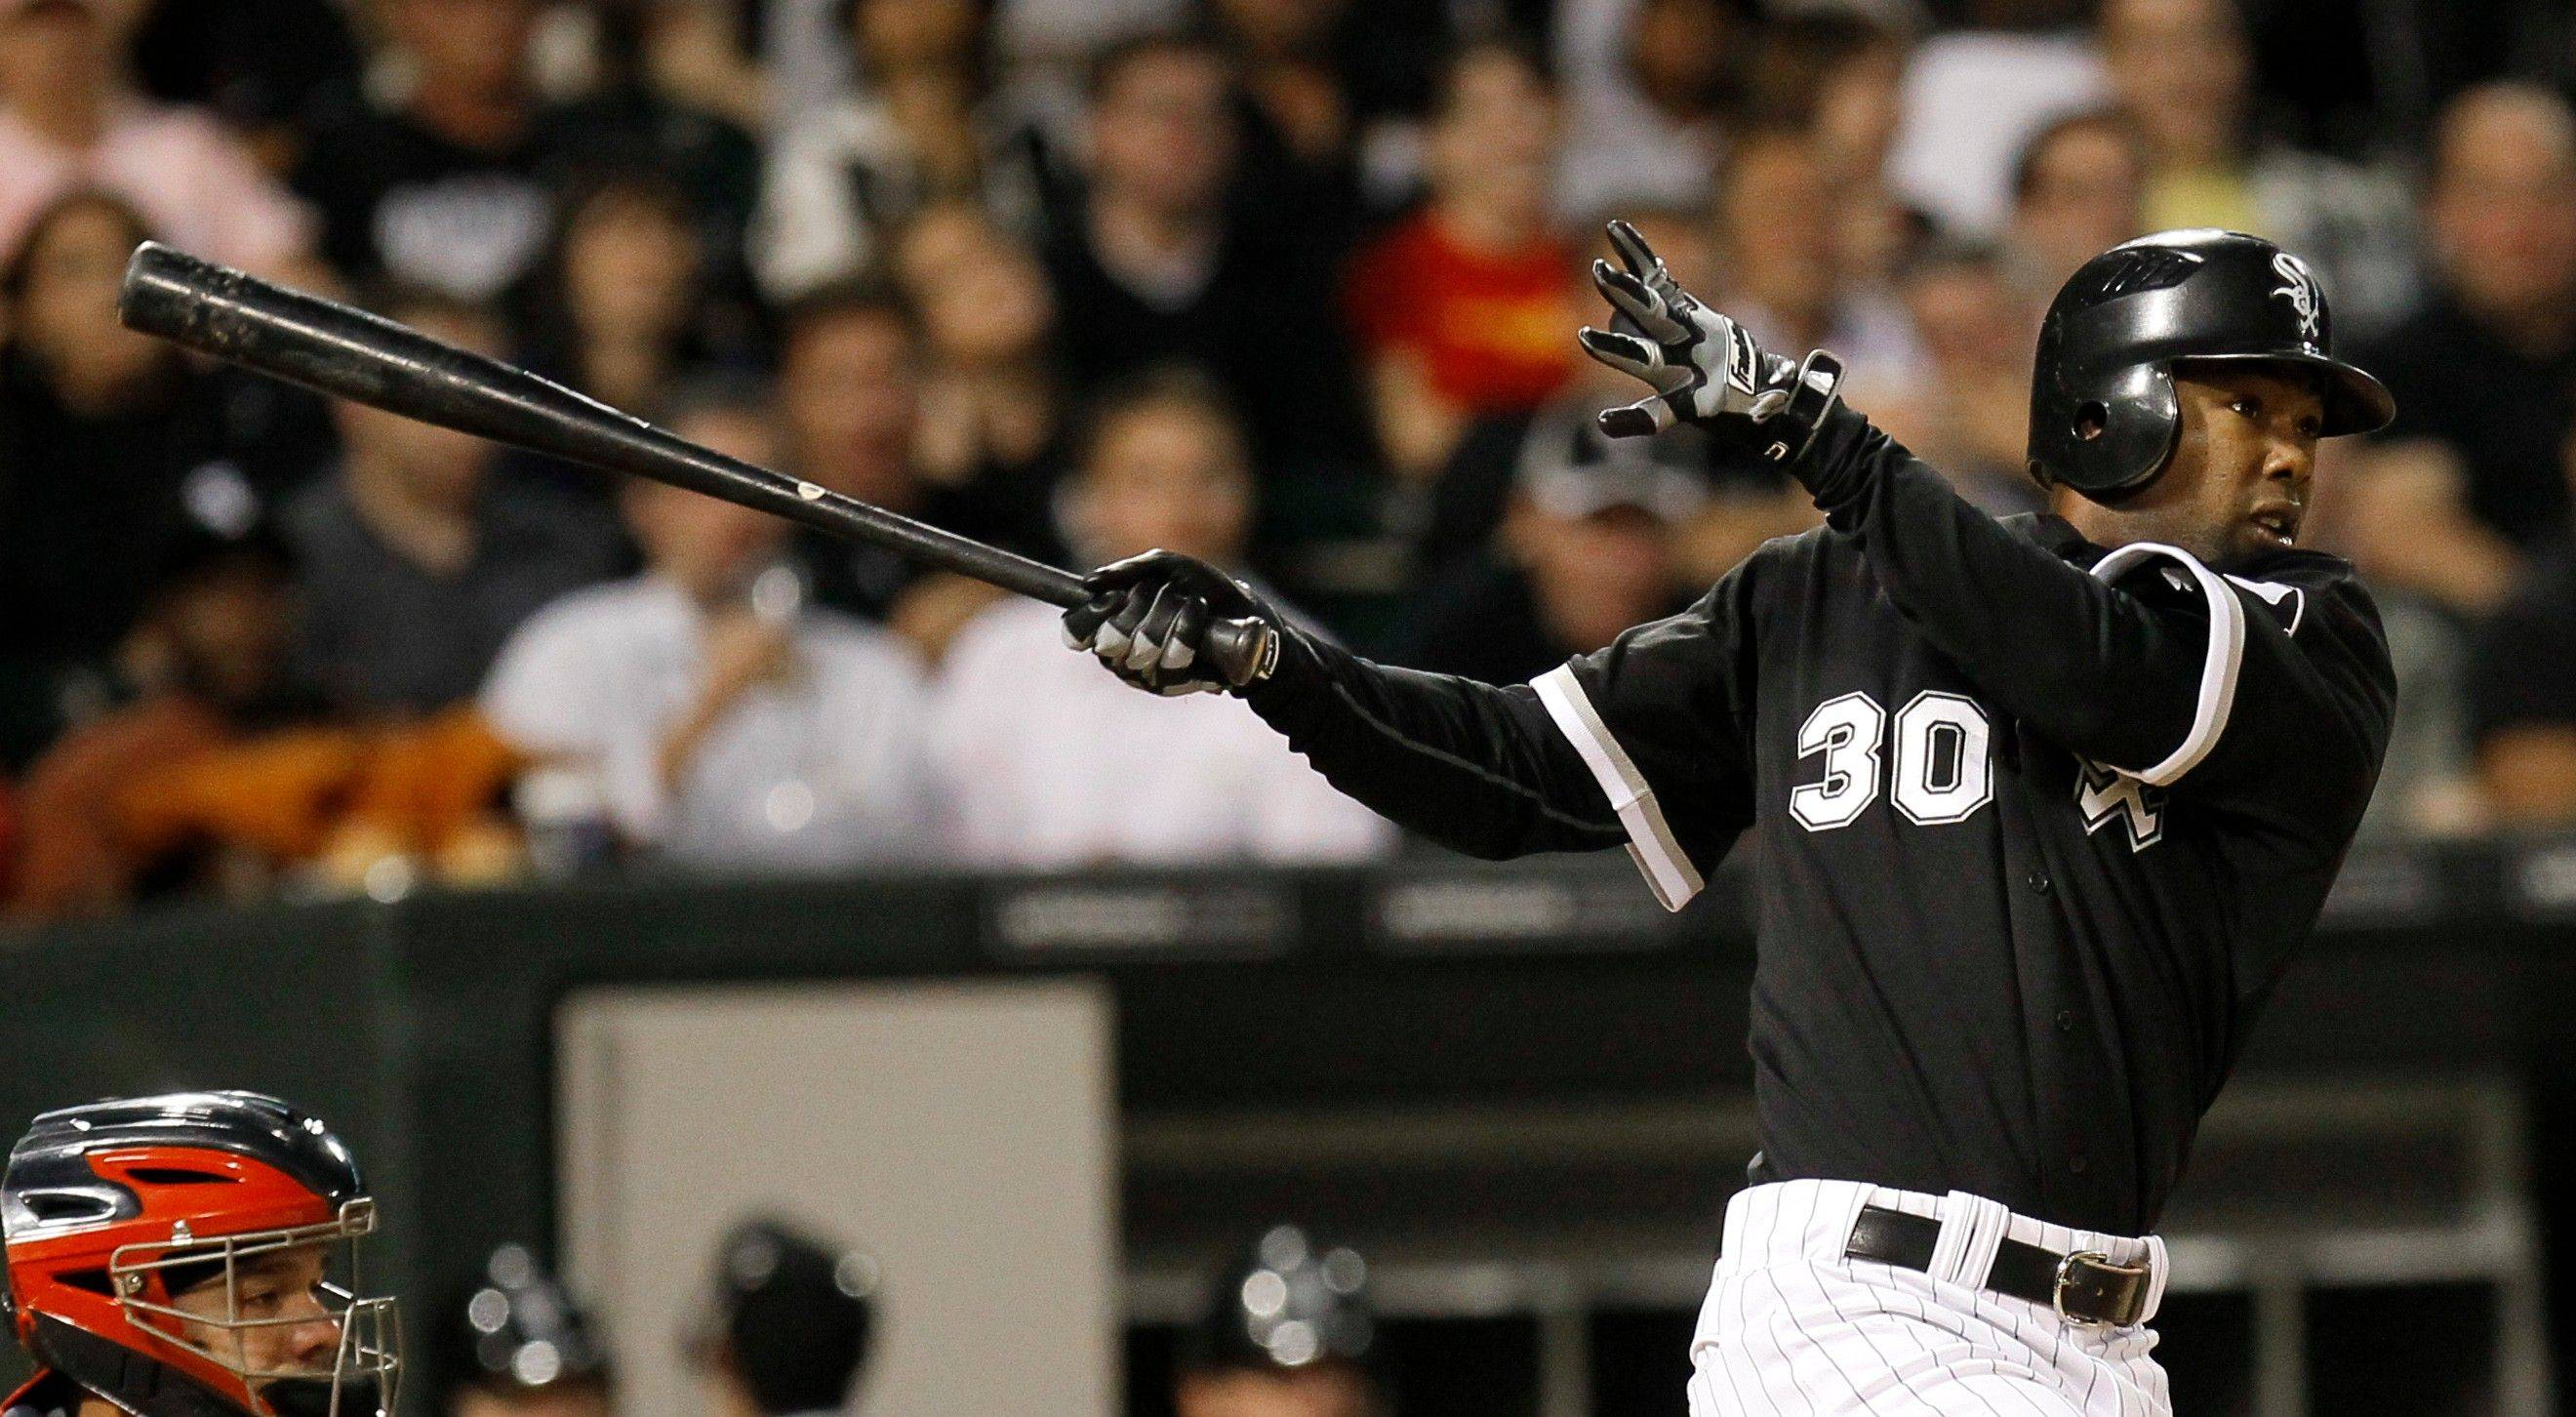 Alejandro De Aza swings through for a 3-run homer off in the fourth inning to erase a 3-0 deficit and get the White Sox' offense going Tuesday night.